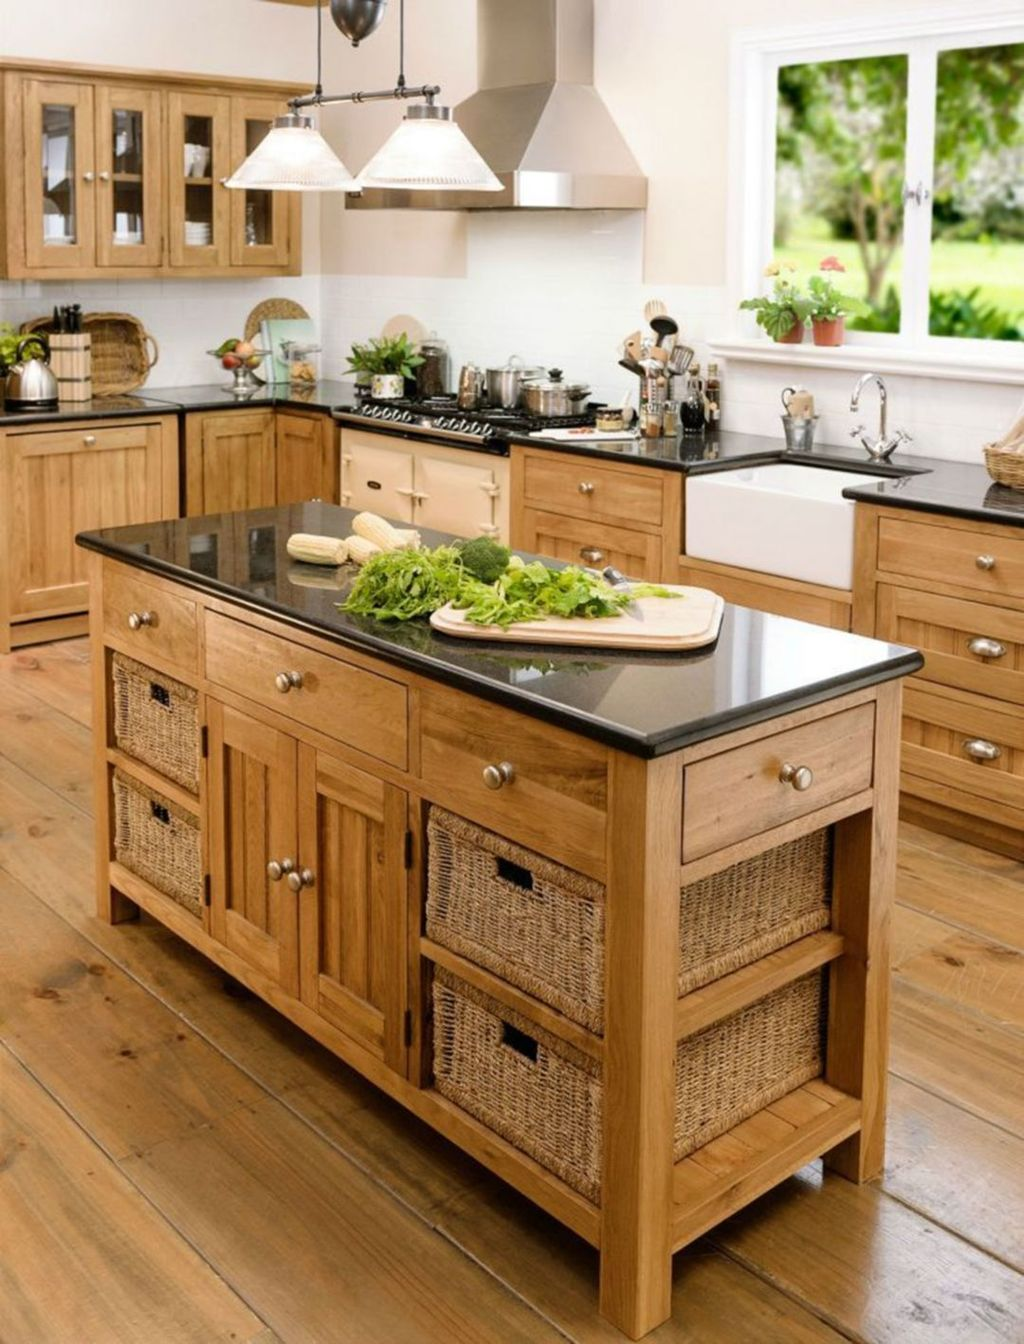 Popular Wooden Cabinets Design Ideas For Your Kitchen Decor 30